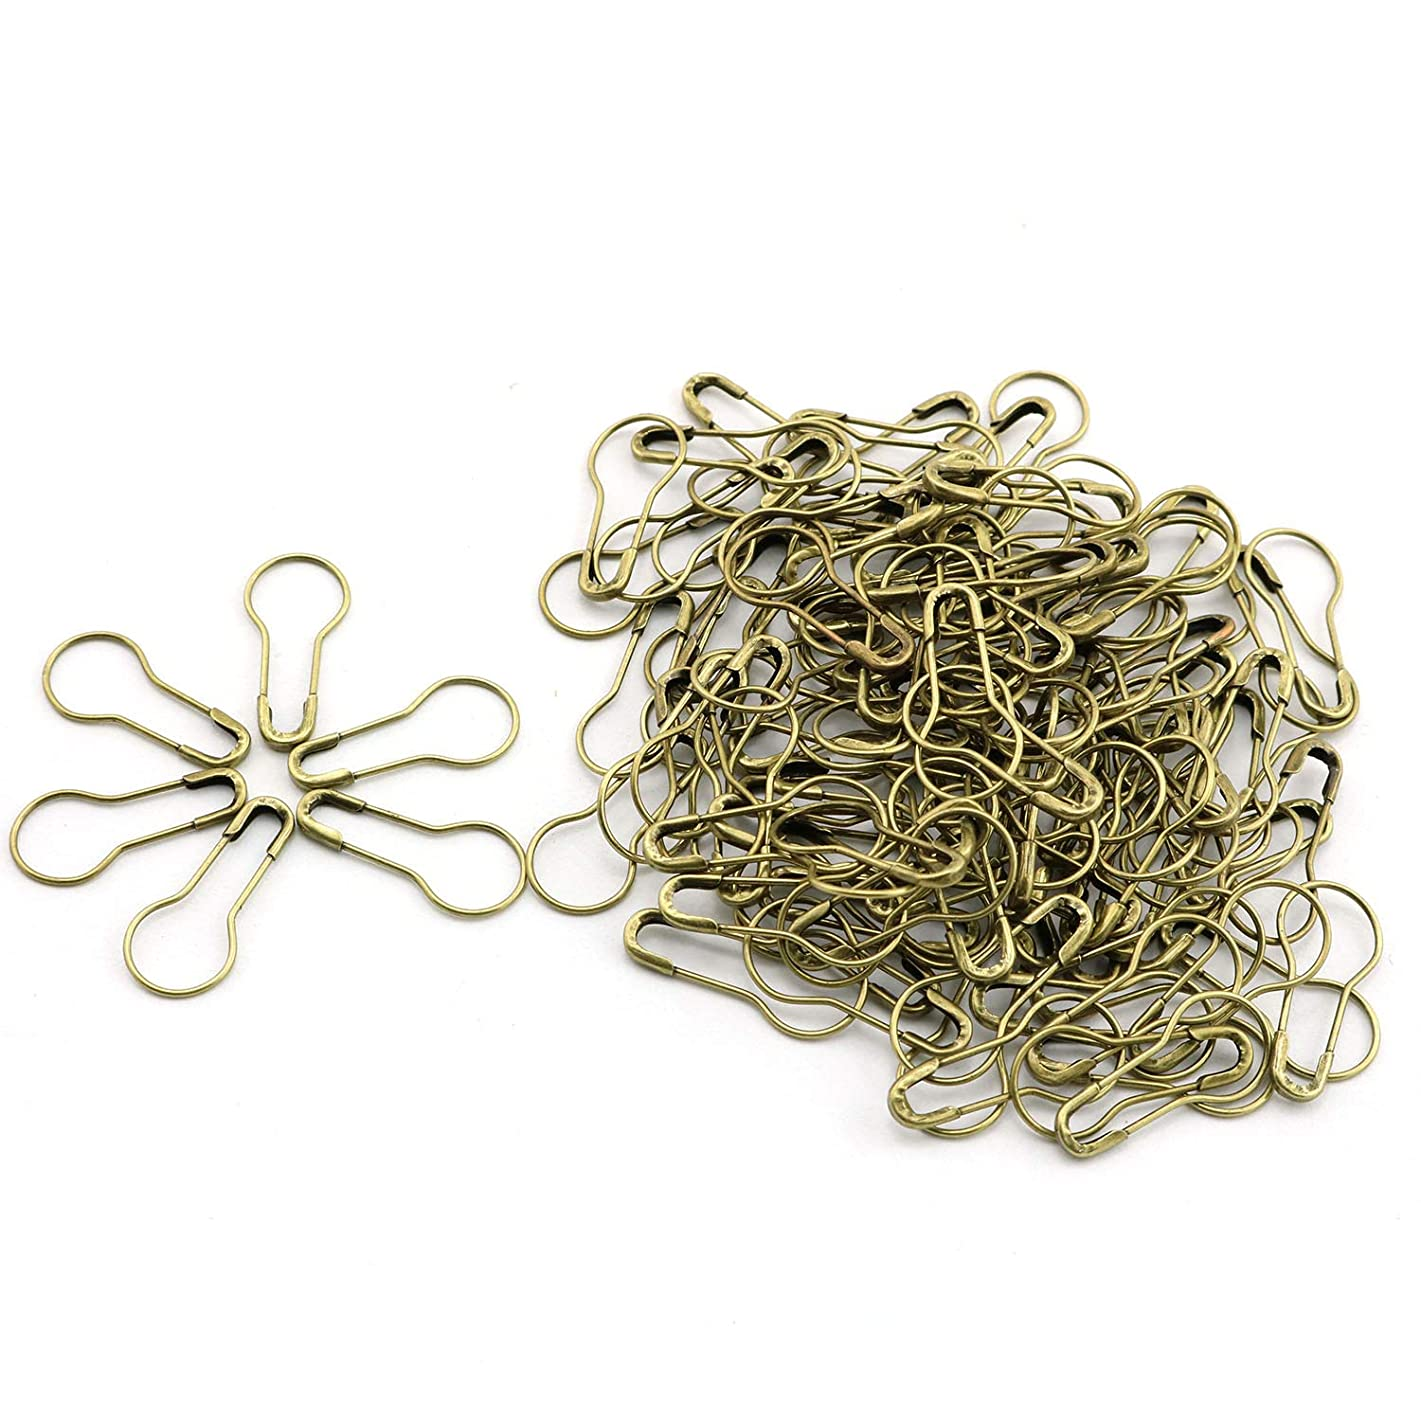 120pcs 21mm Safety Pins Metal Gourd Shape Knitting Cross Stitch Marker DIY Clothing Kits Tag Pins Bronze